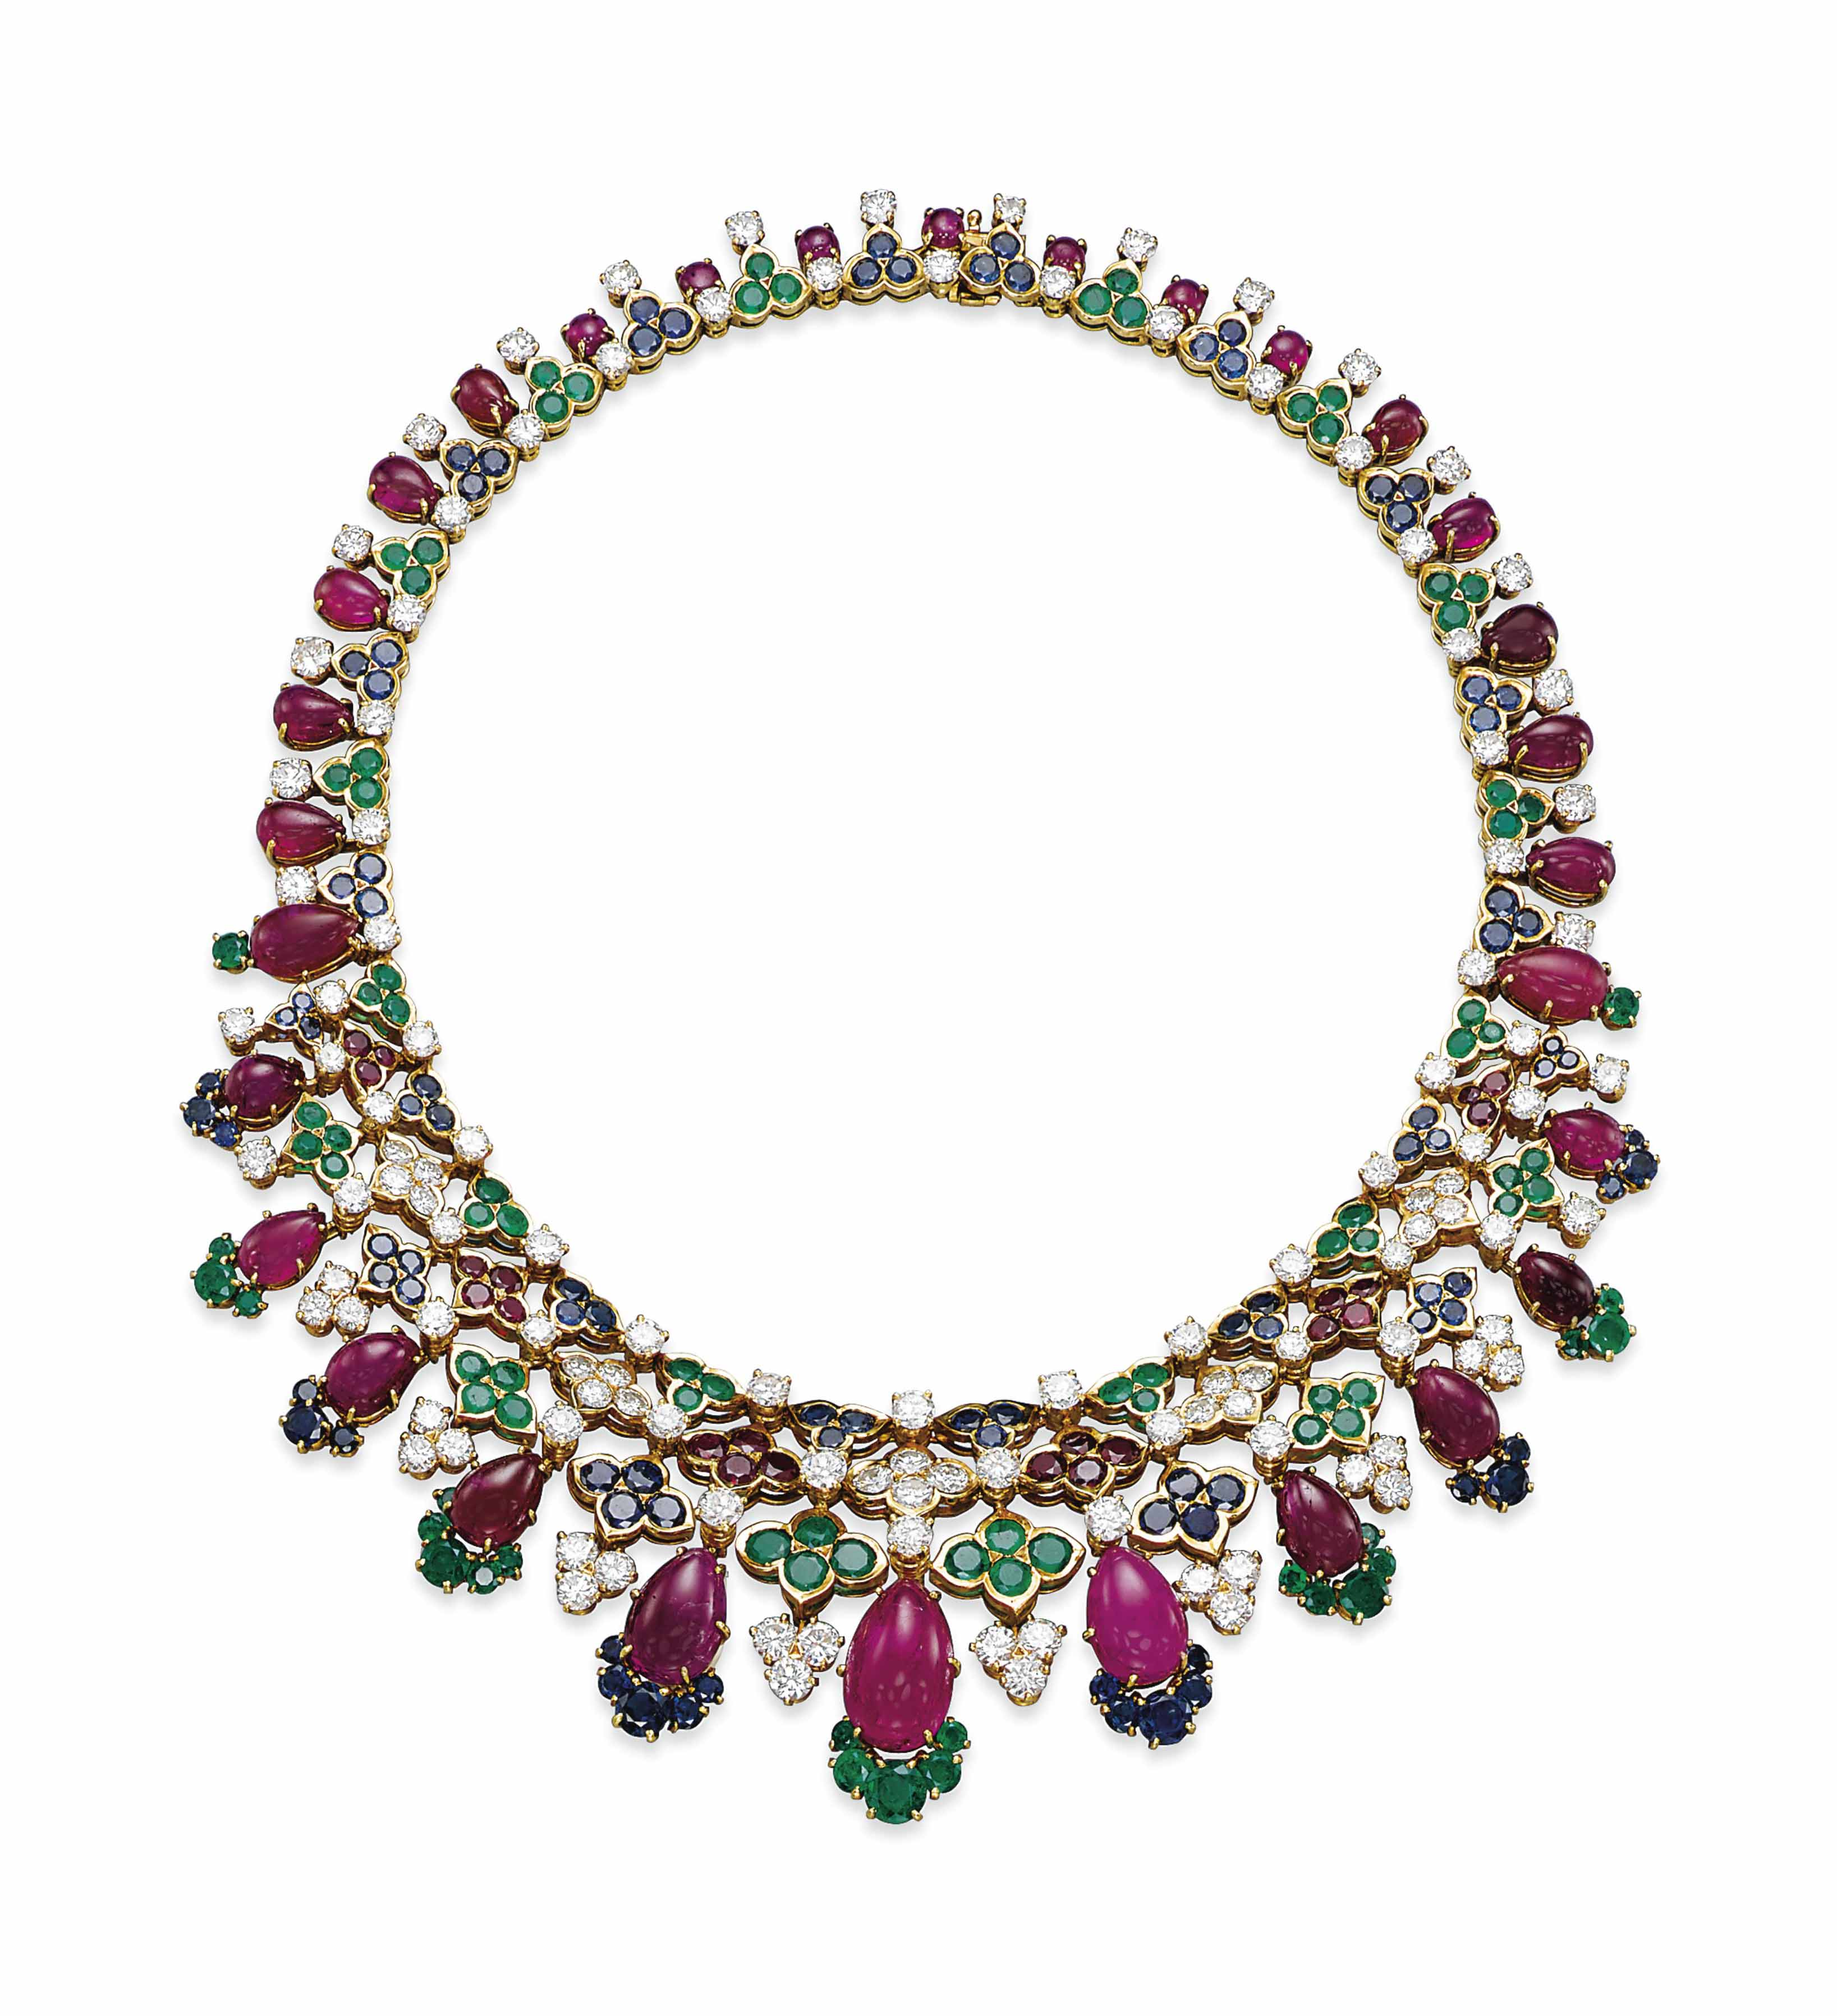 A RUBY, EMERALD, SAPPHIRE AND DIAMOND NECKLACE, BY MAUBOUSSIN